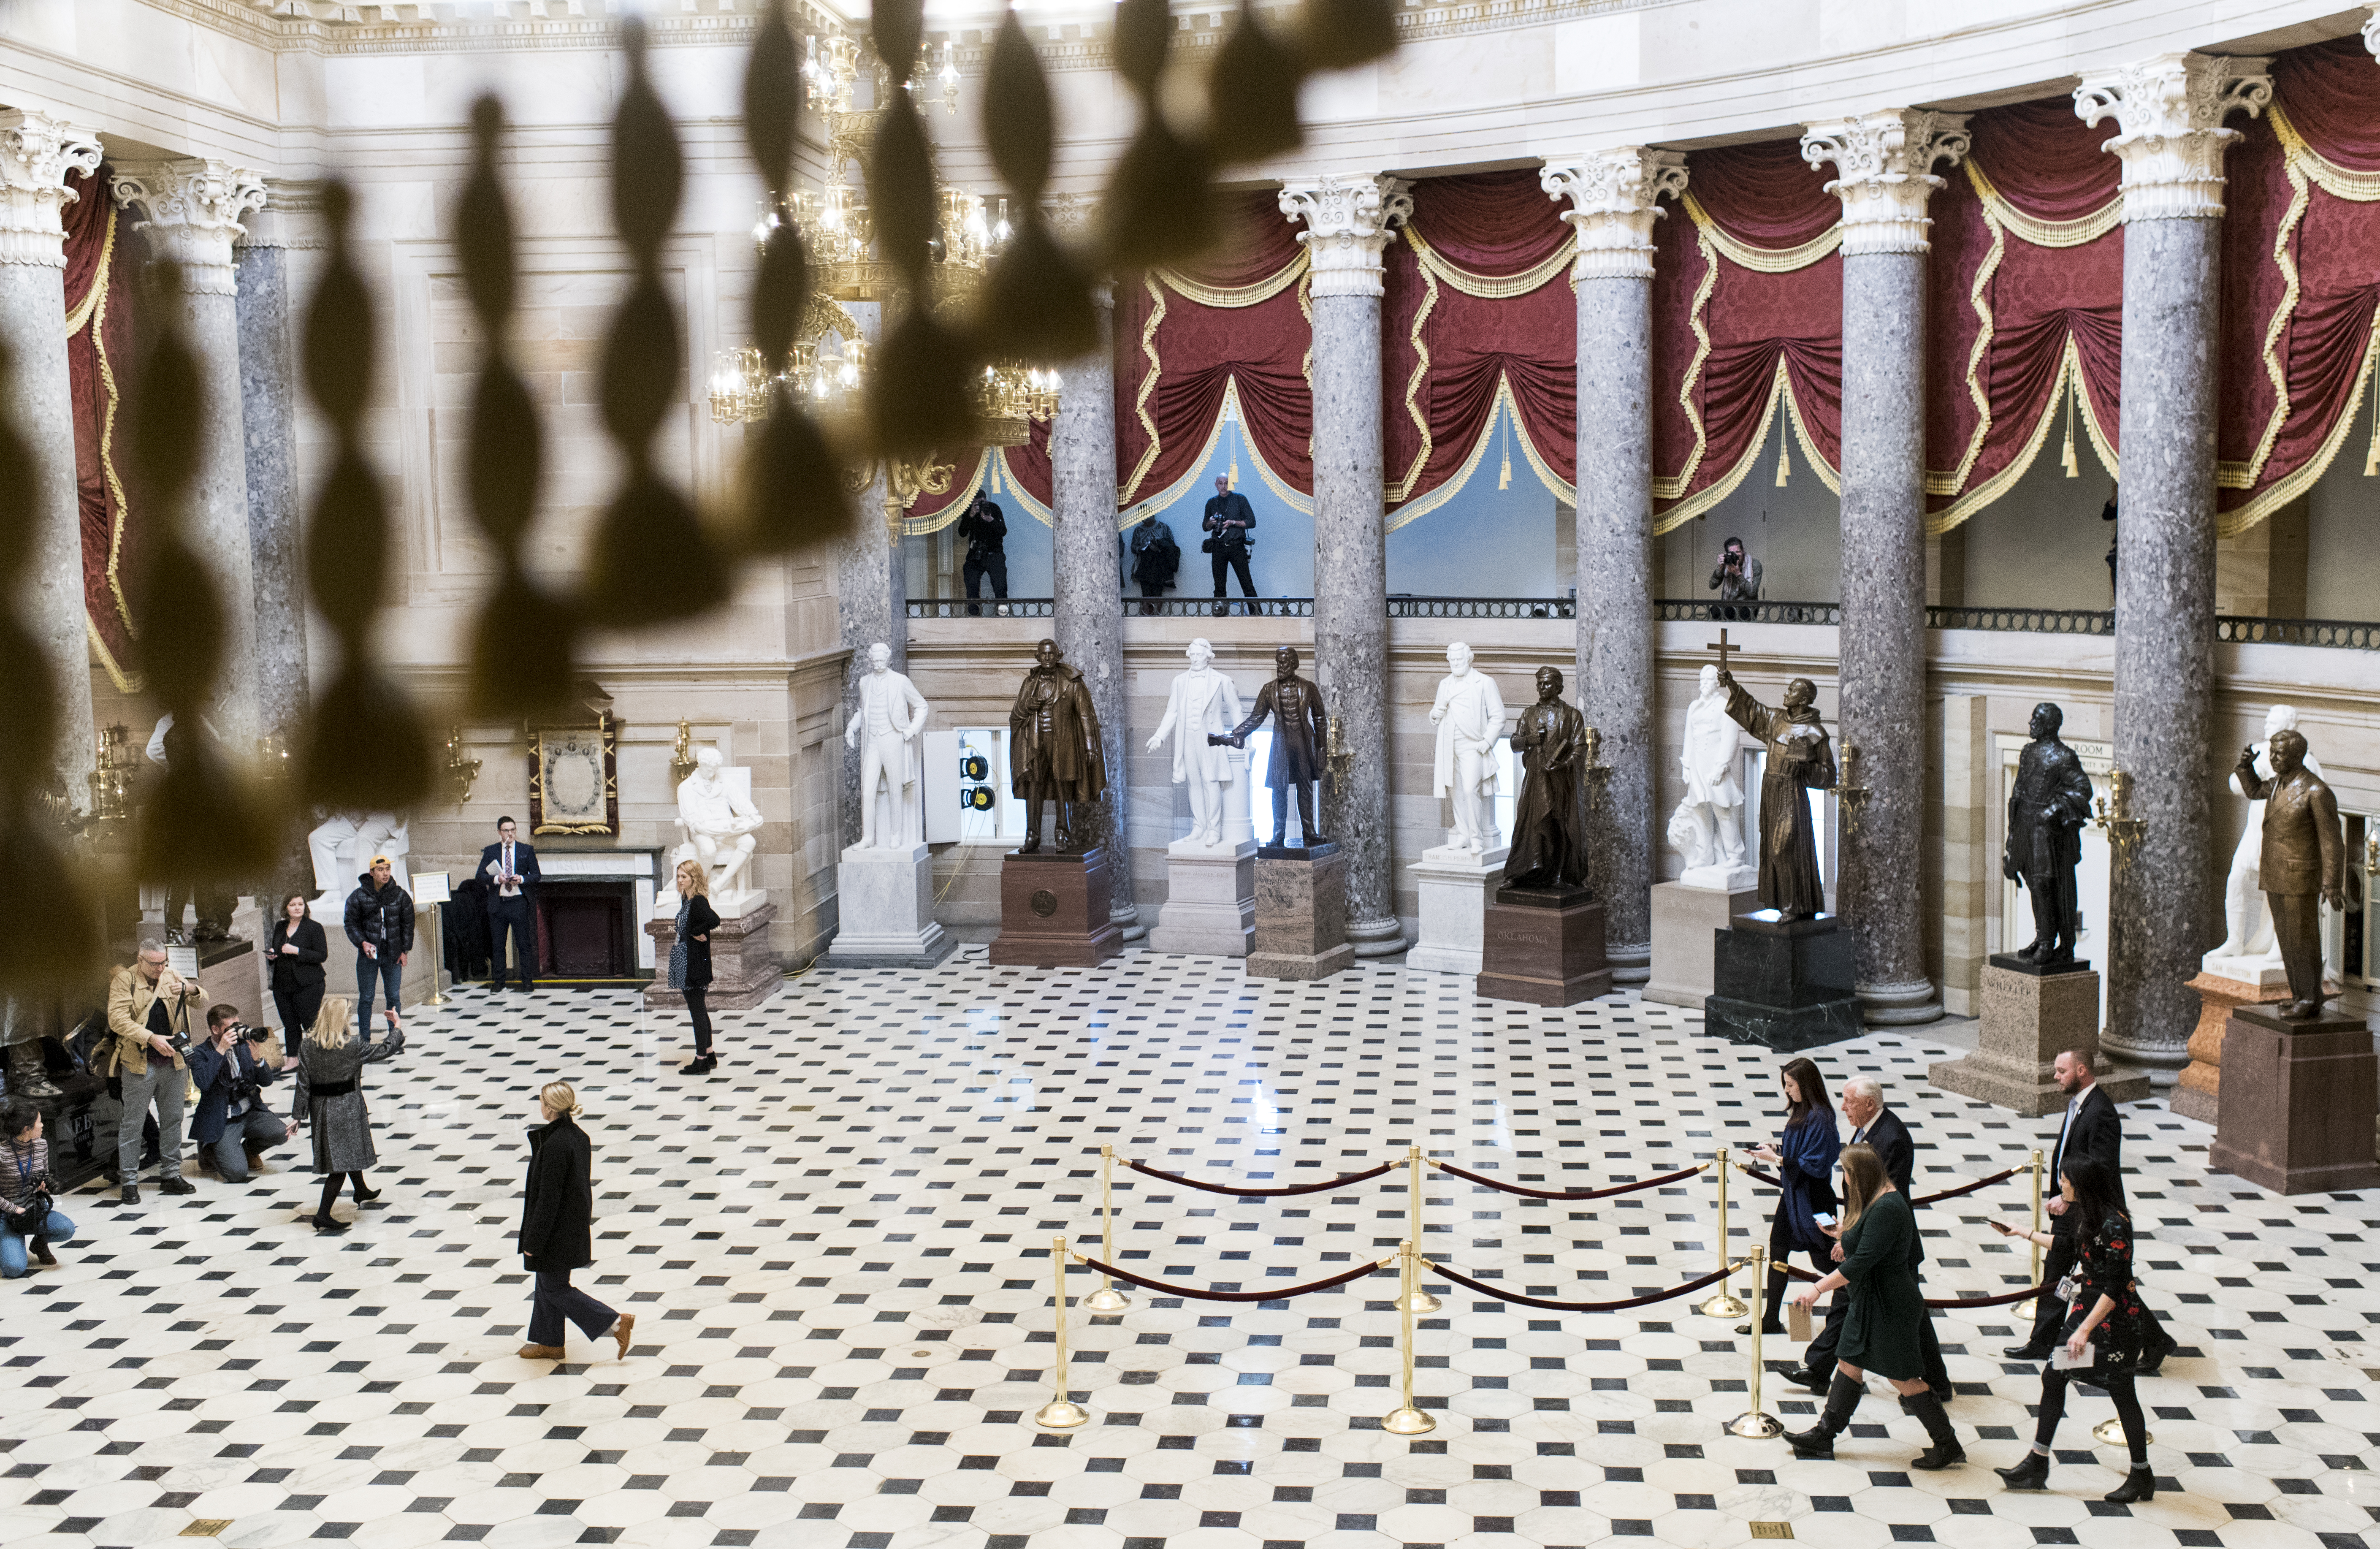 UNITED STATES - DECEMBER 18: House Majority Leader Steny Hoyer, D-Md., walks through Statuary Hall on his way to the House floor as House of Representatives takes up articles of impeachment against President Donald Trump in the Capitol on Wednesday, Dec. 18, 2019. (Photo By Bill Clark/CQ Roll Call)